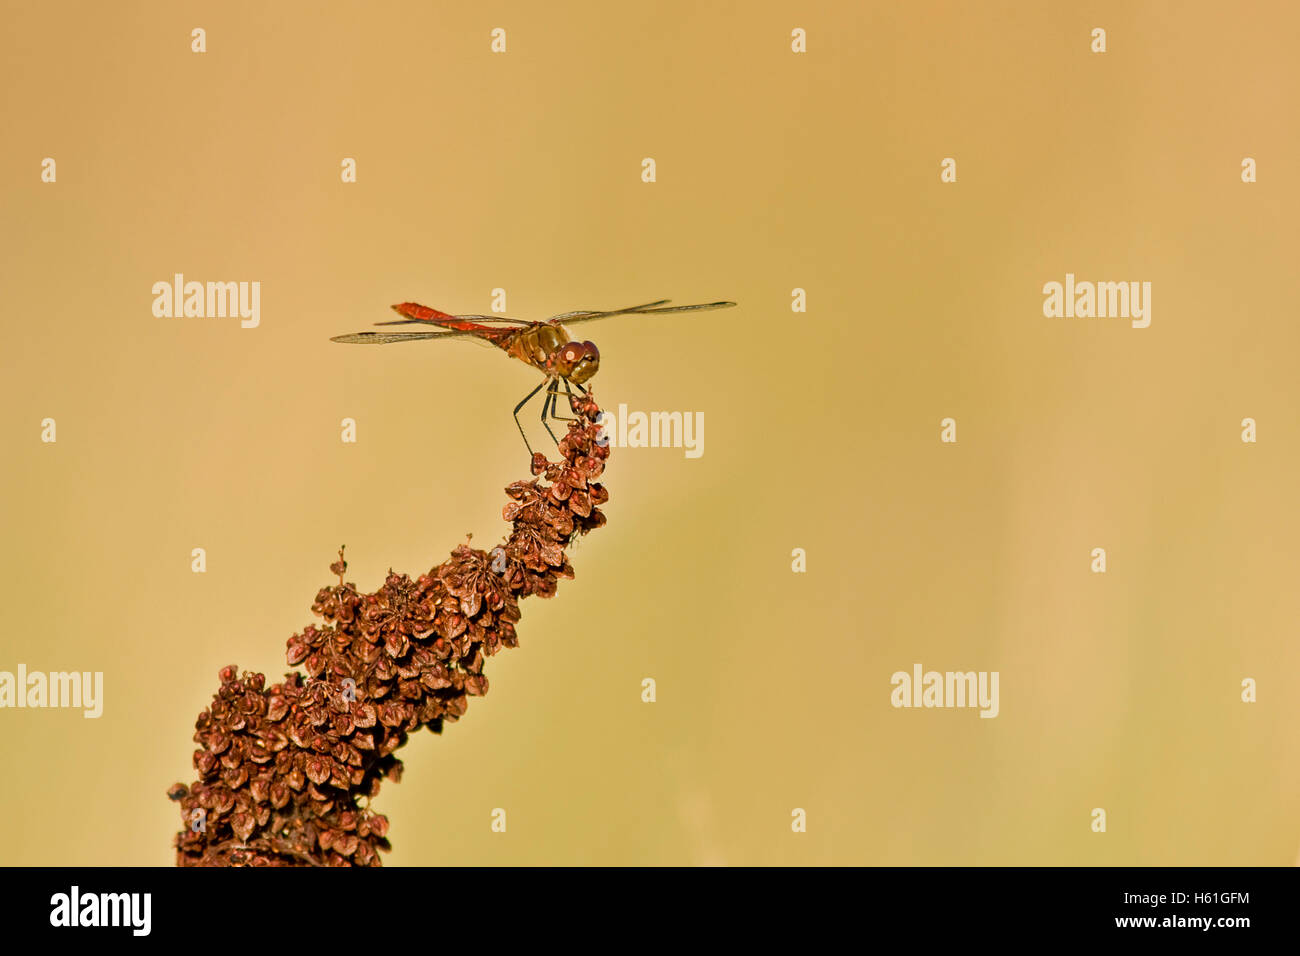 Dragonfly on a dried plant - Stock Image